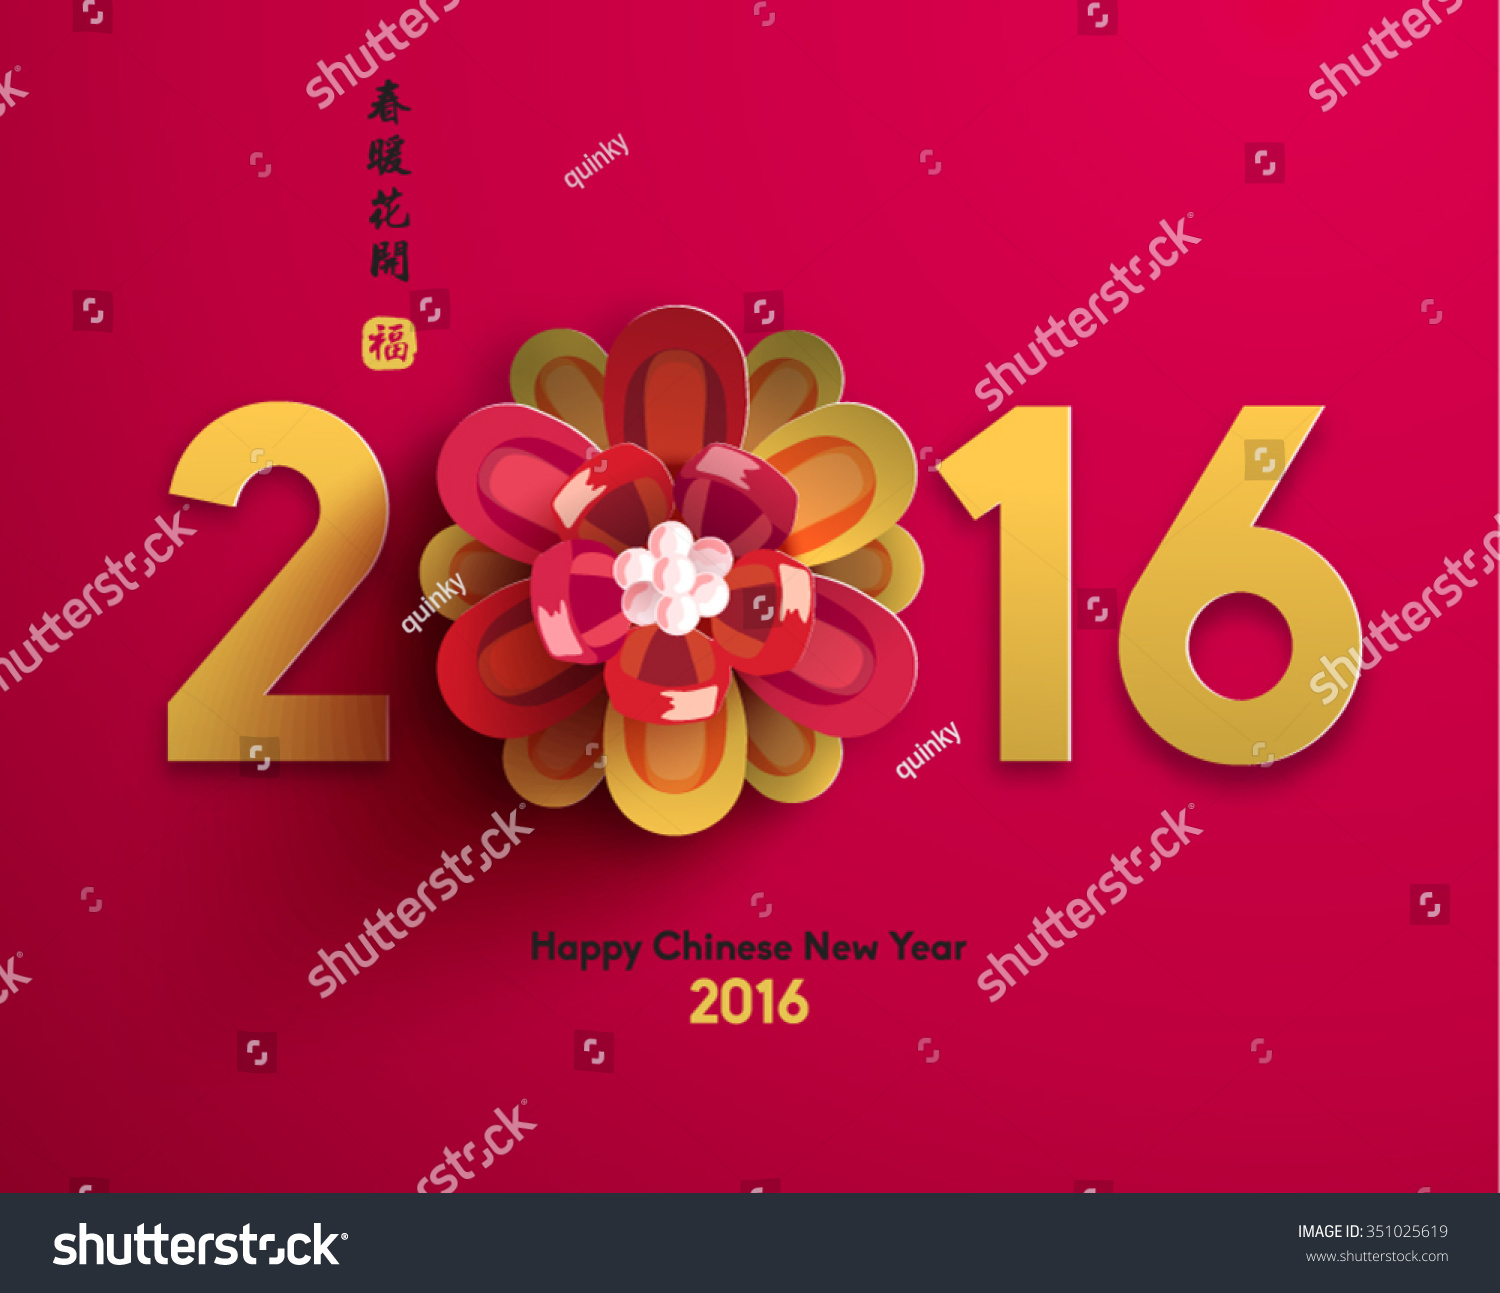 Chinese new year 2016 blooming flower vector design - Flowers for chinese new year ...